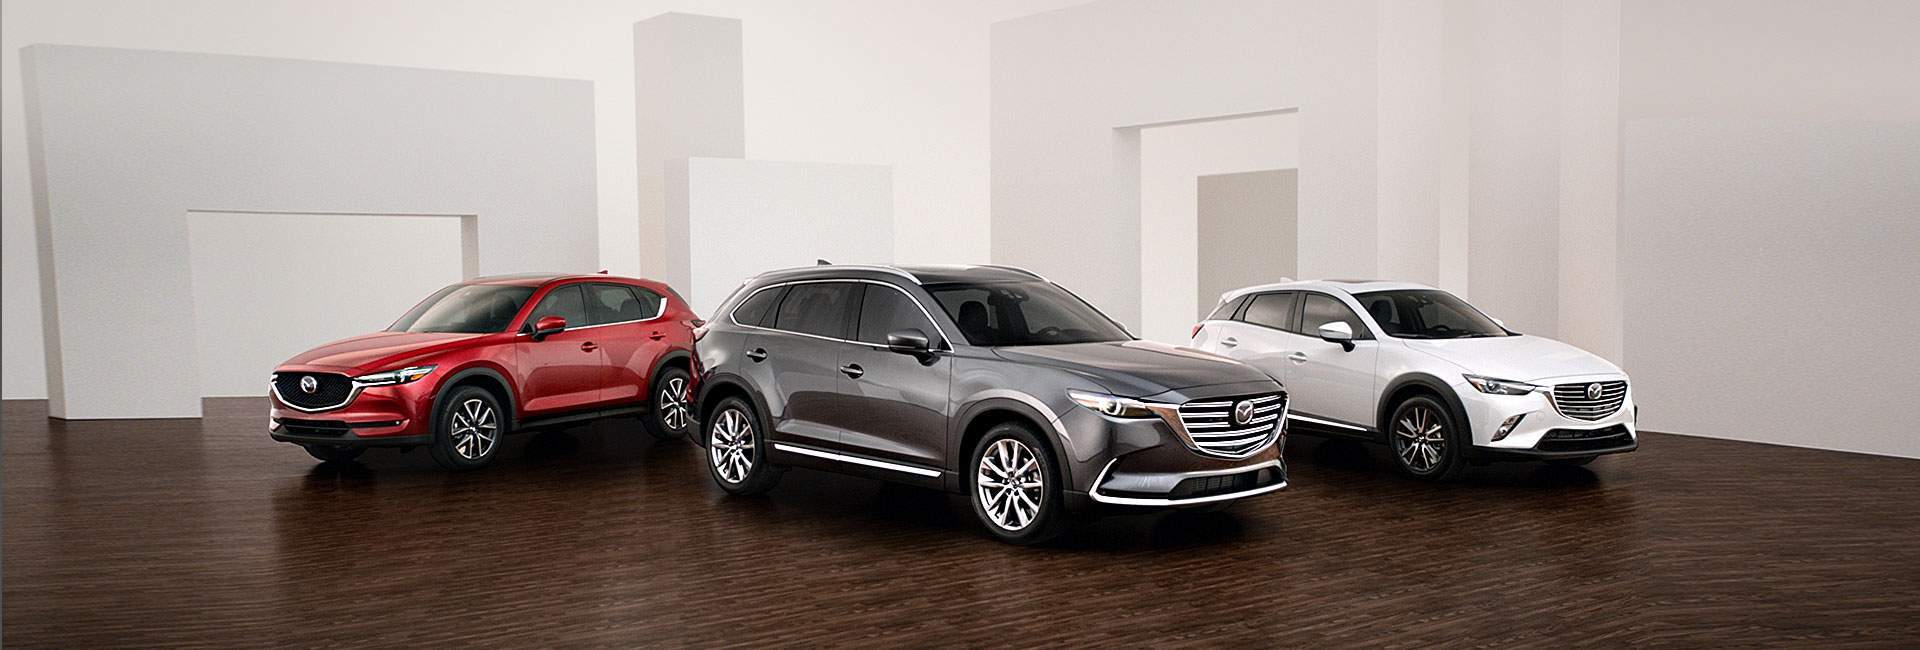 2017 Mazda SUVs in Brookfield